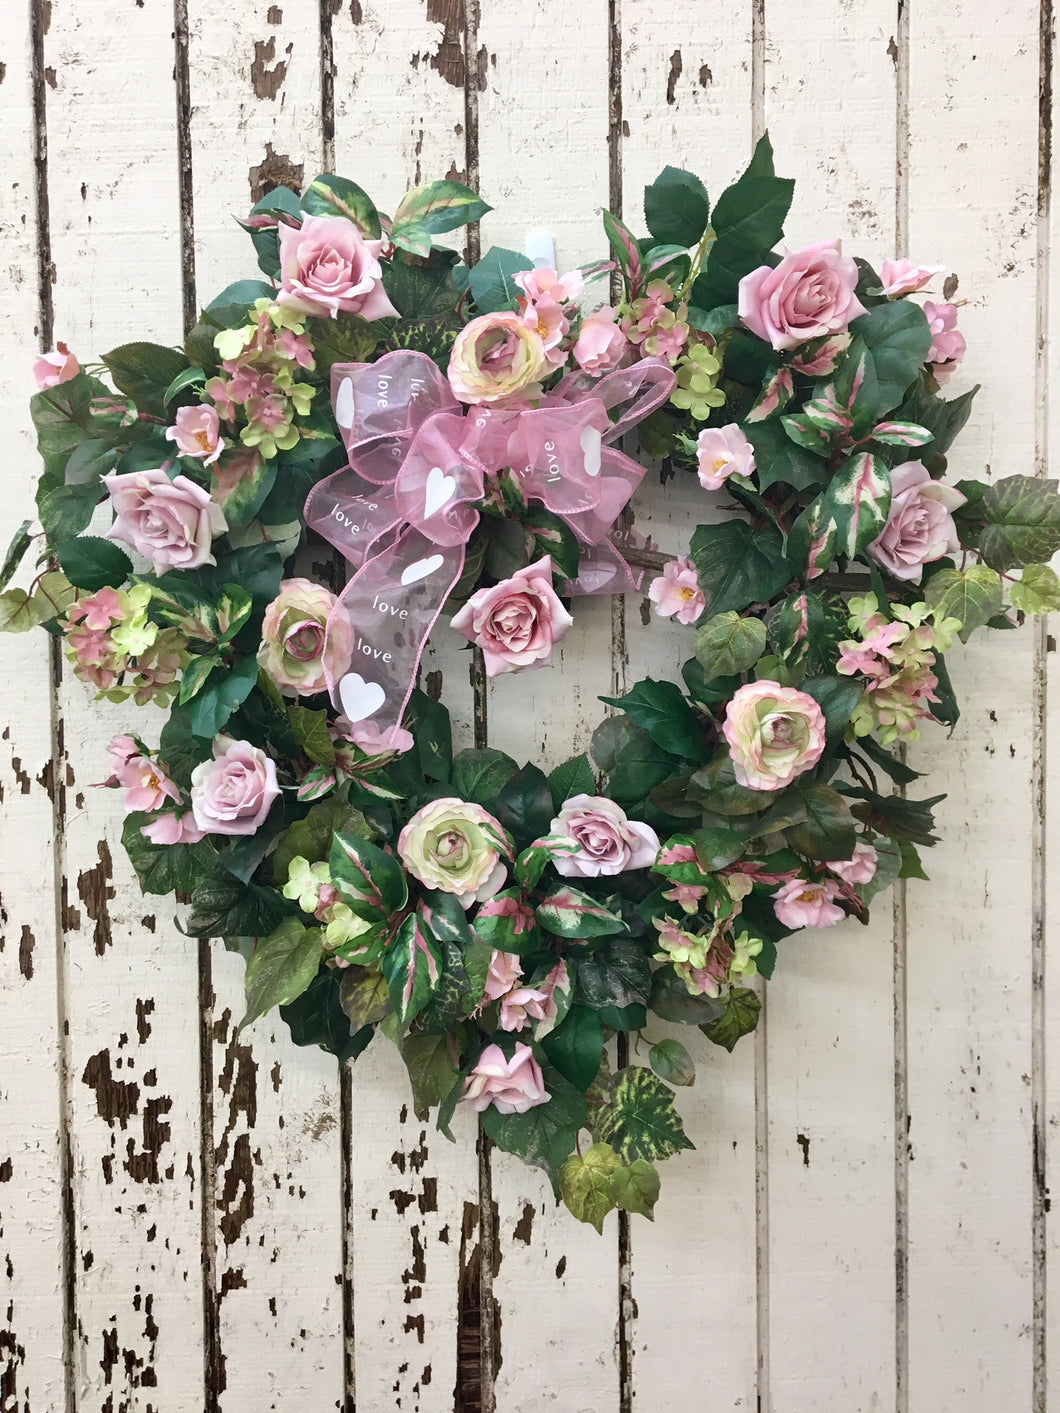 Gallery/Val05 - April's Garden Wreath